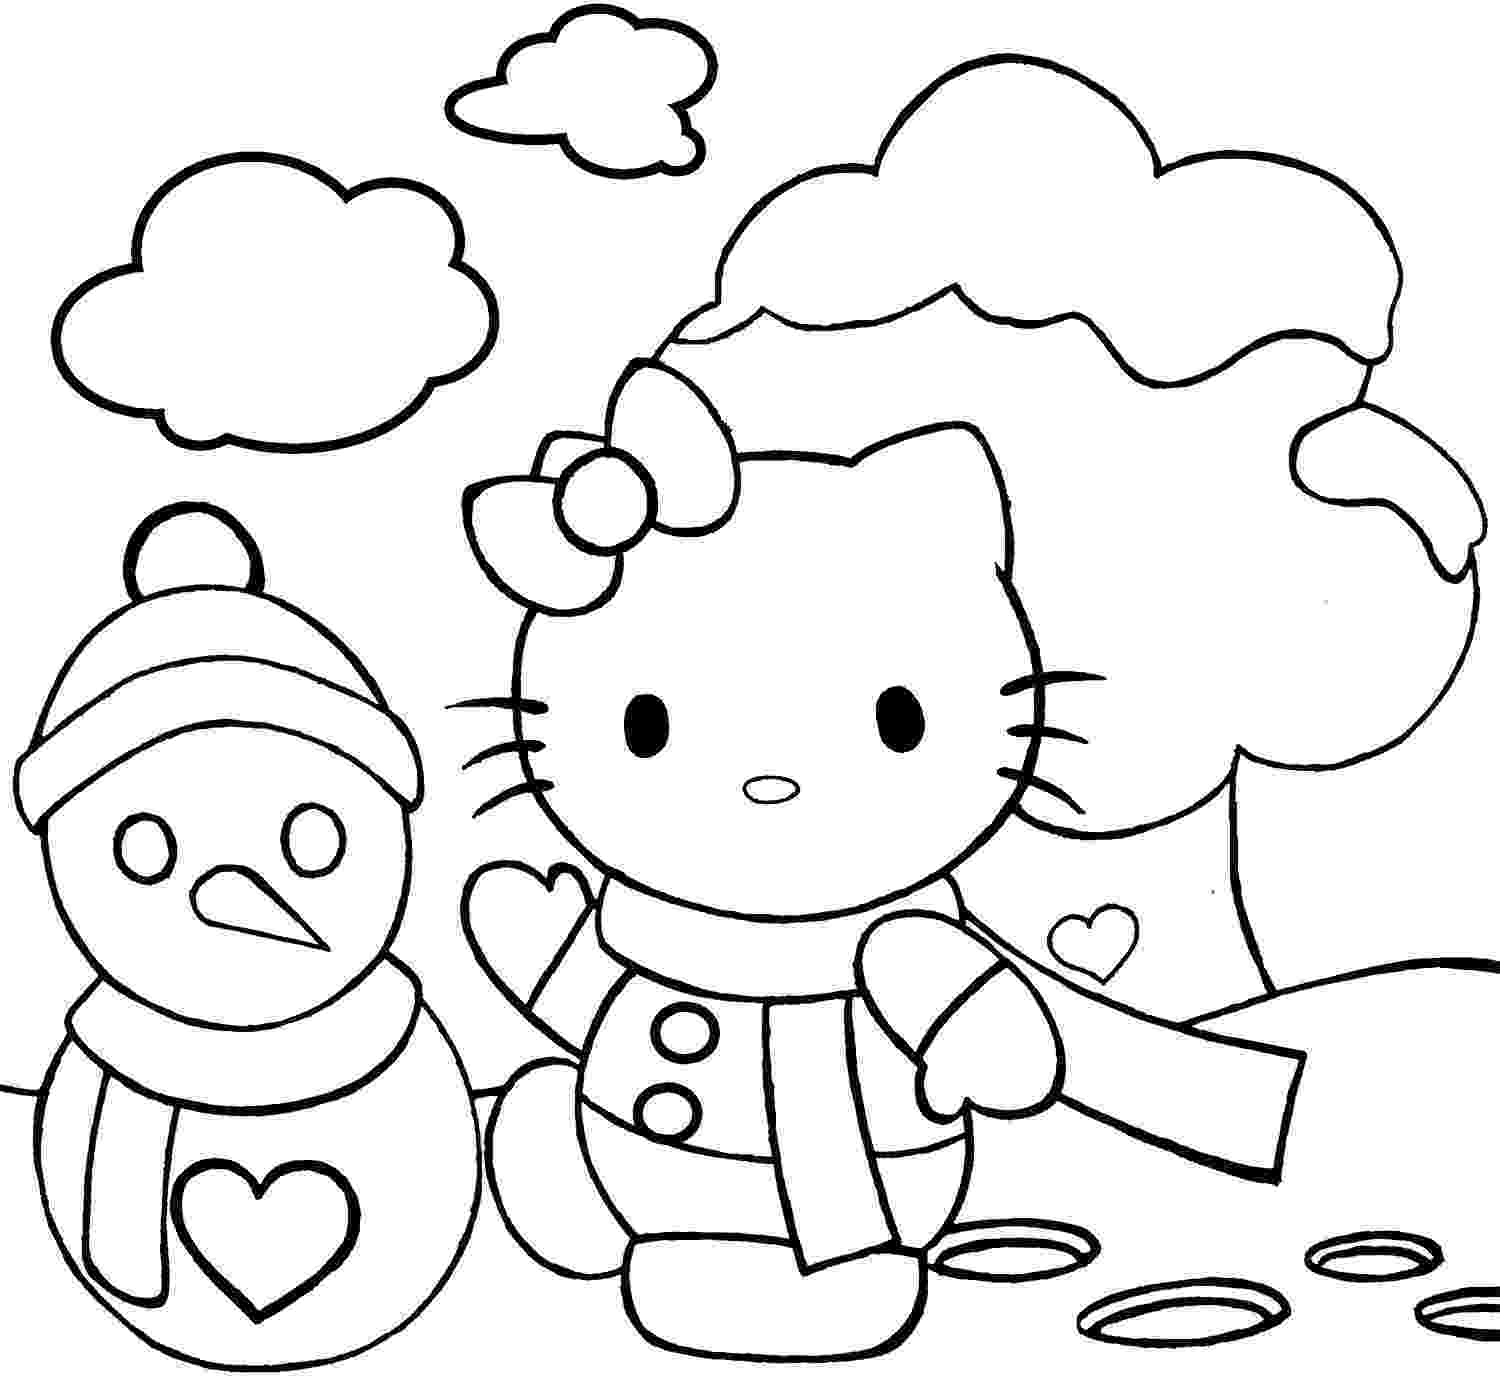 hello kitty christmas coloring pages free print hello kitty coloring pages kitty hello print free pages coloring christmas